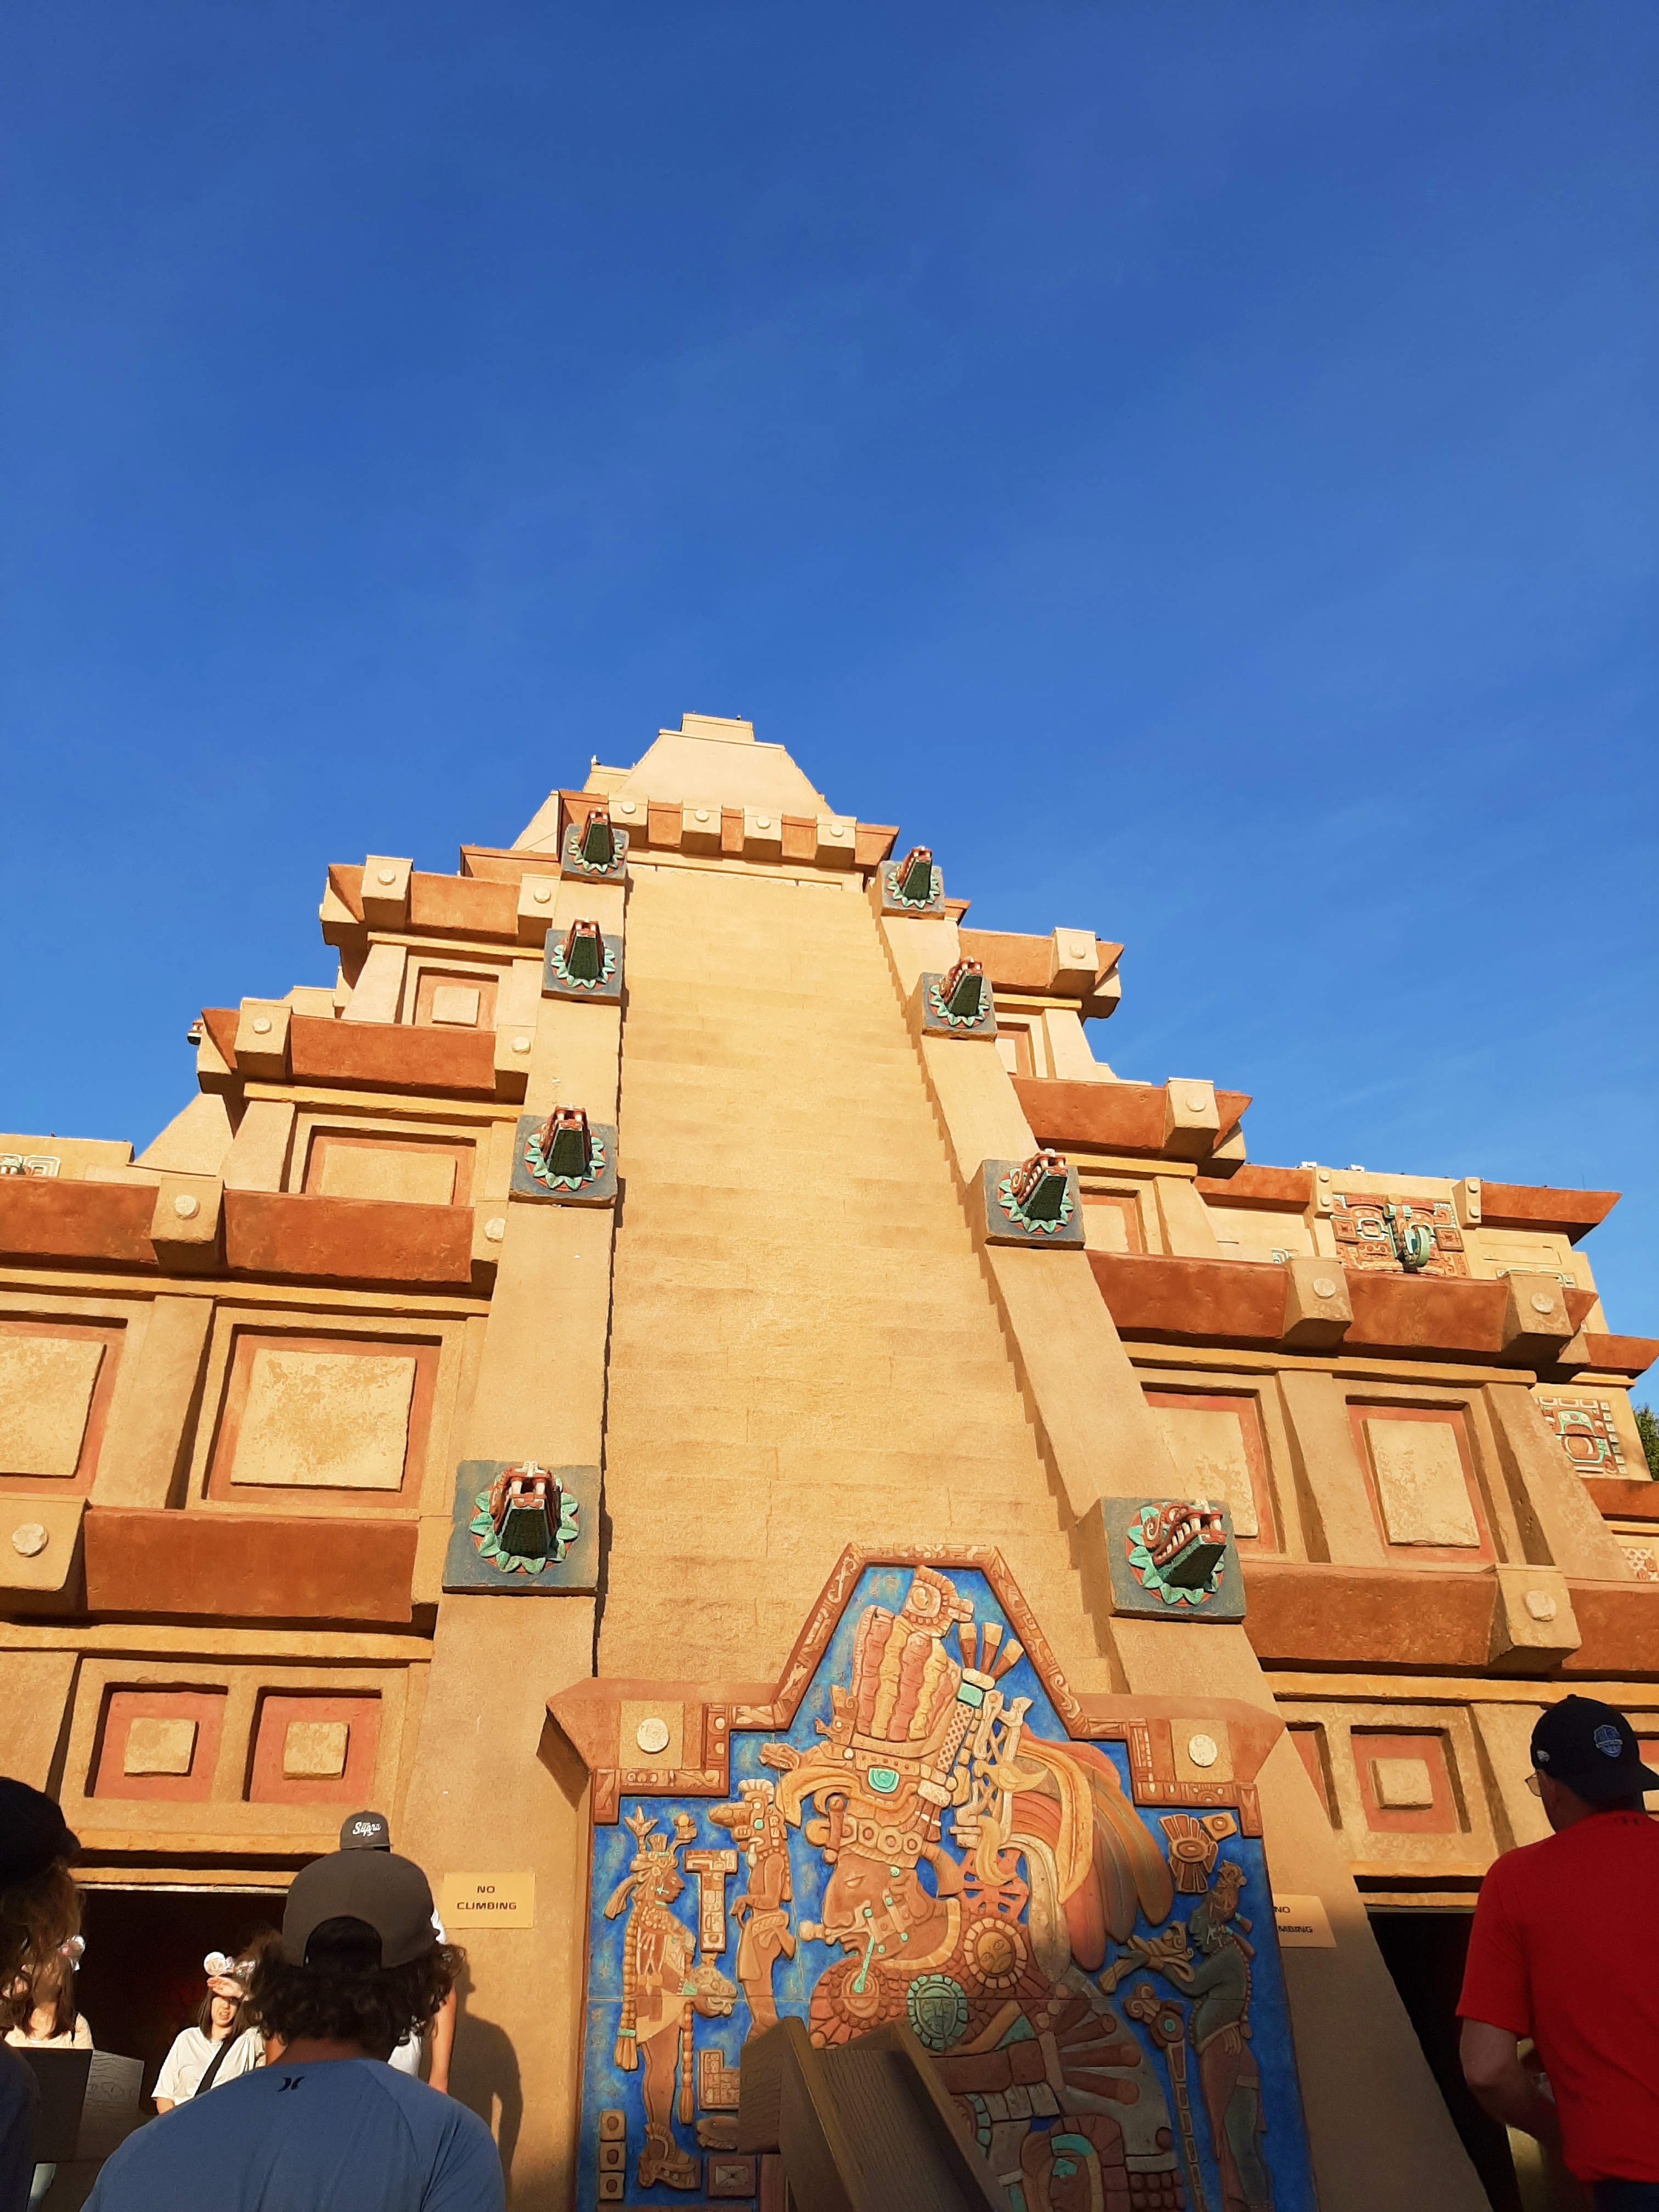 Entrance to the Mexico Pavilion, EPCOT